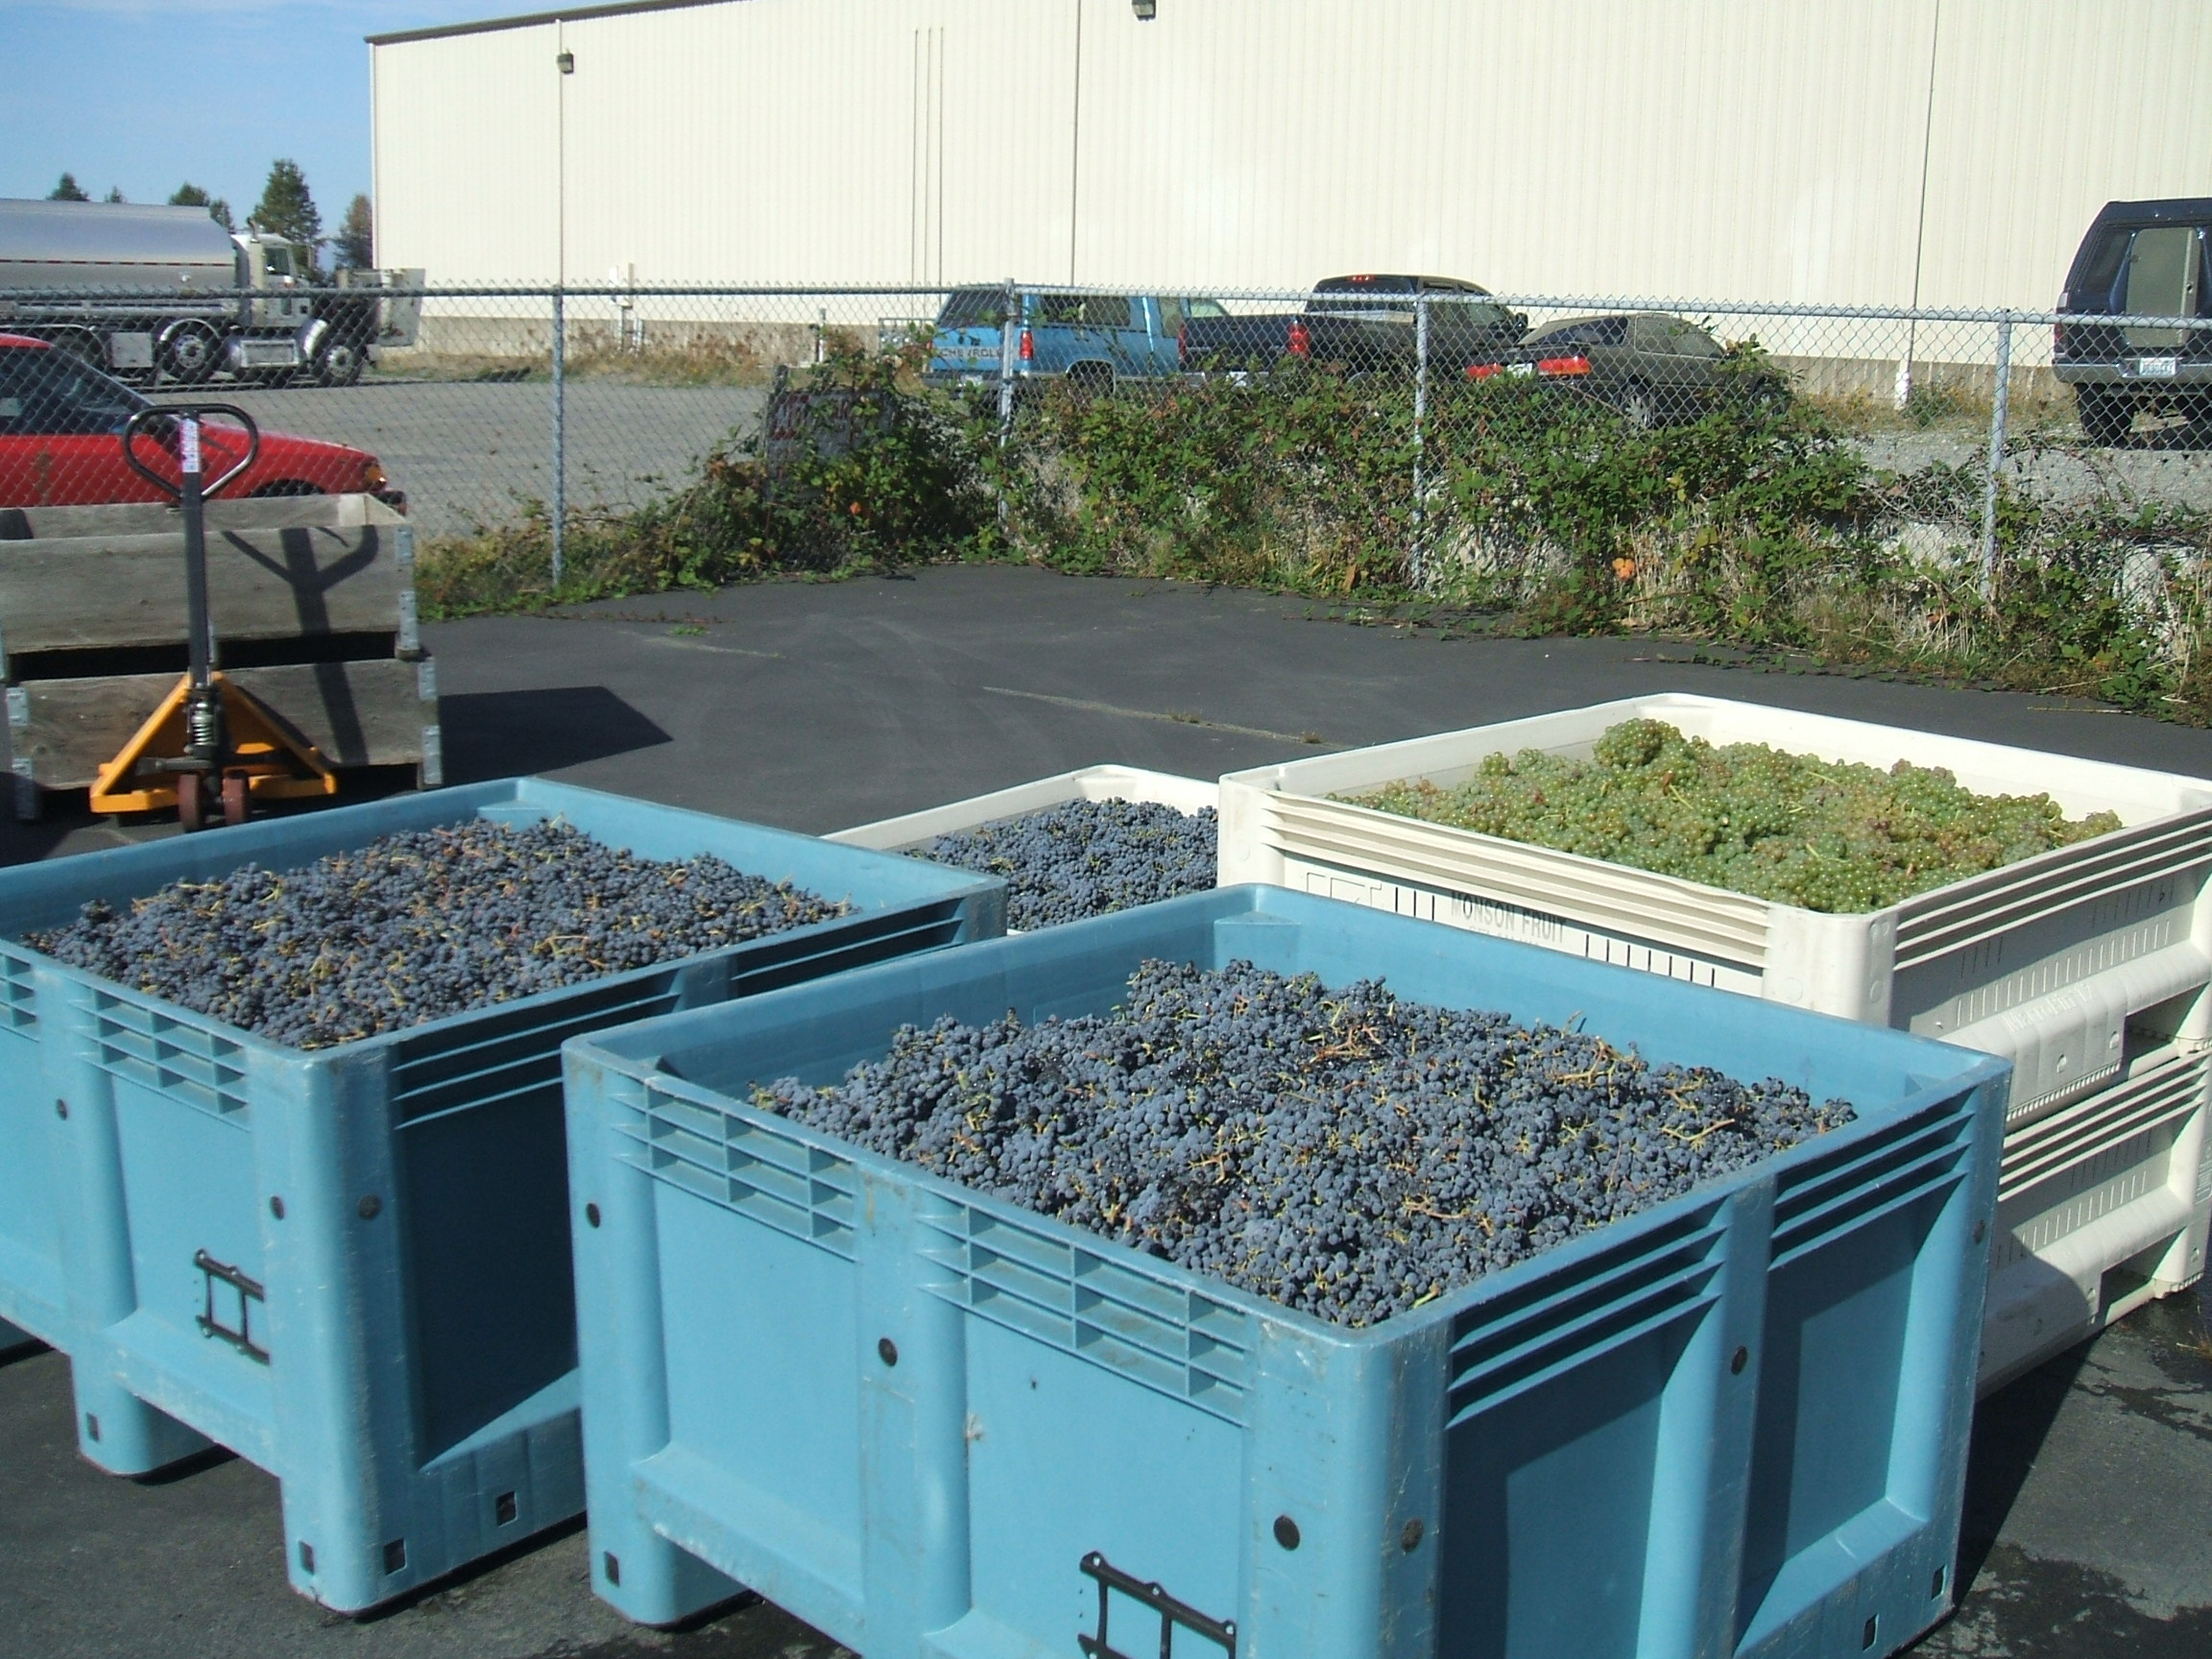 Cabernet and Marsanne grapes